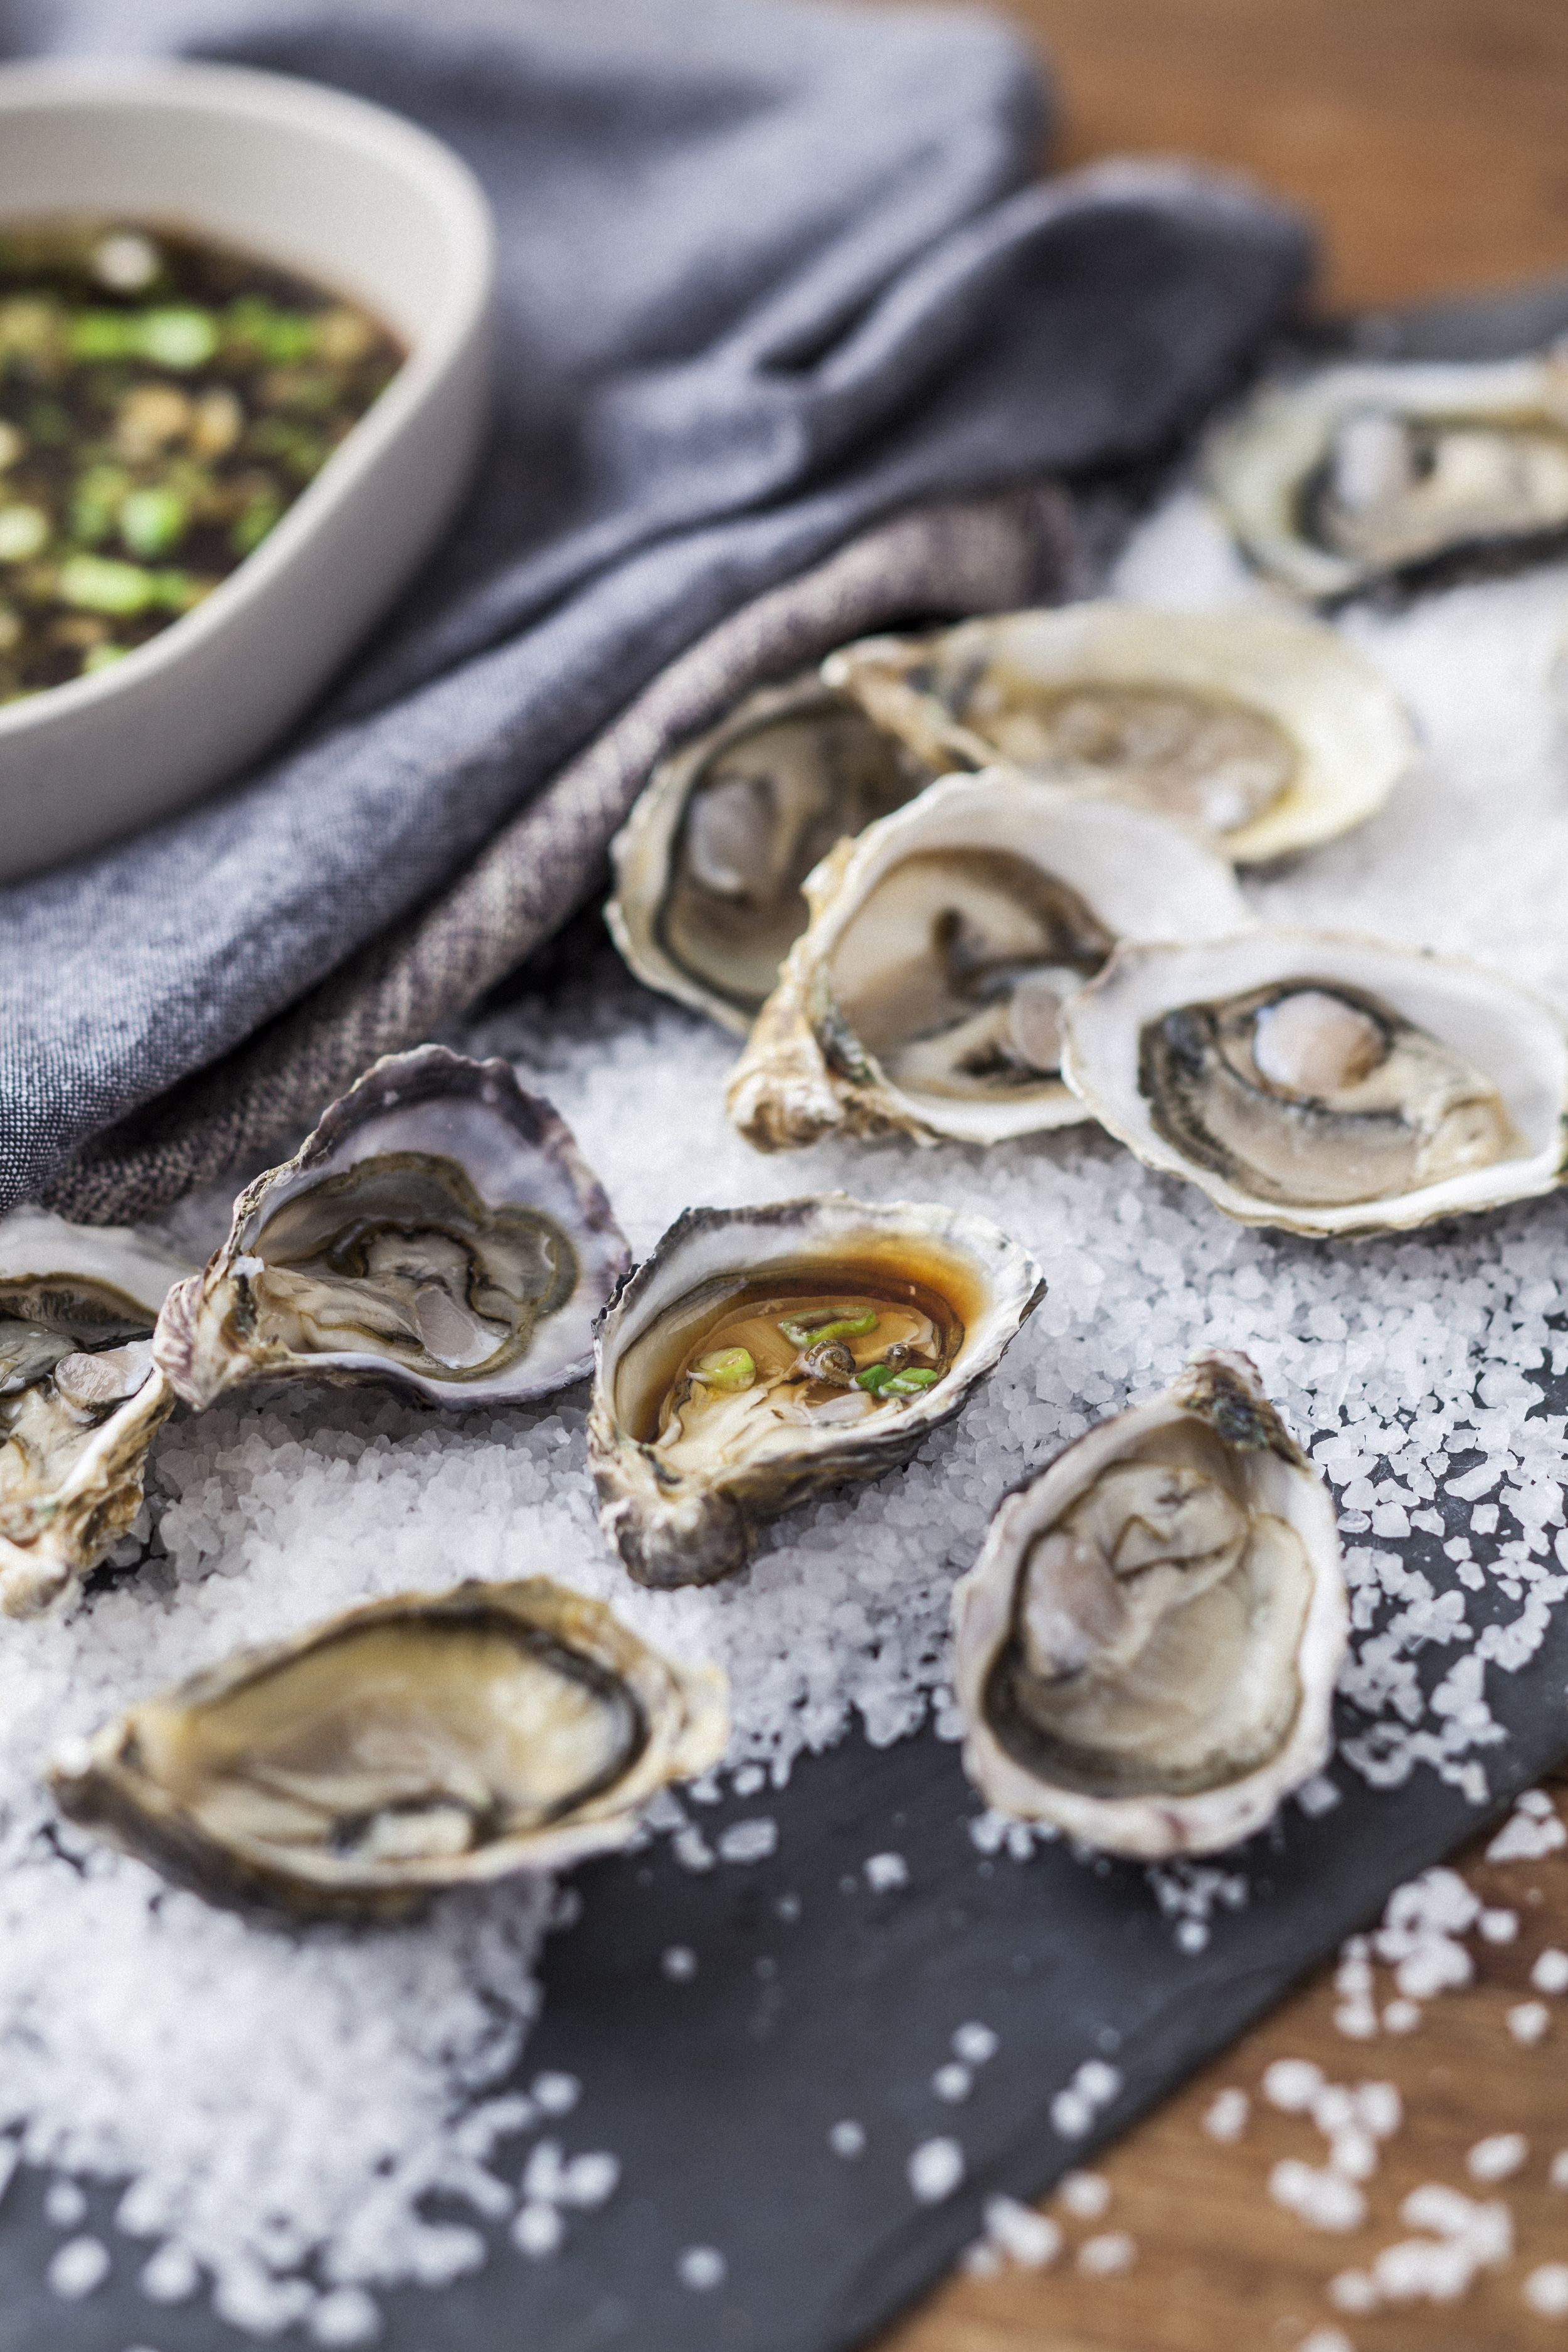 Oysters-2-26.jpg